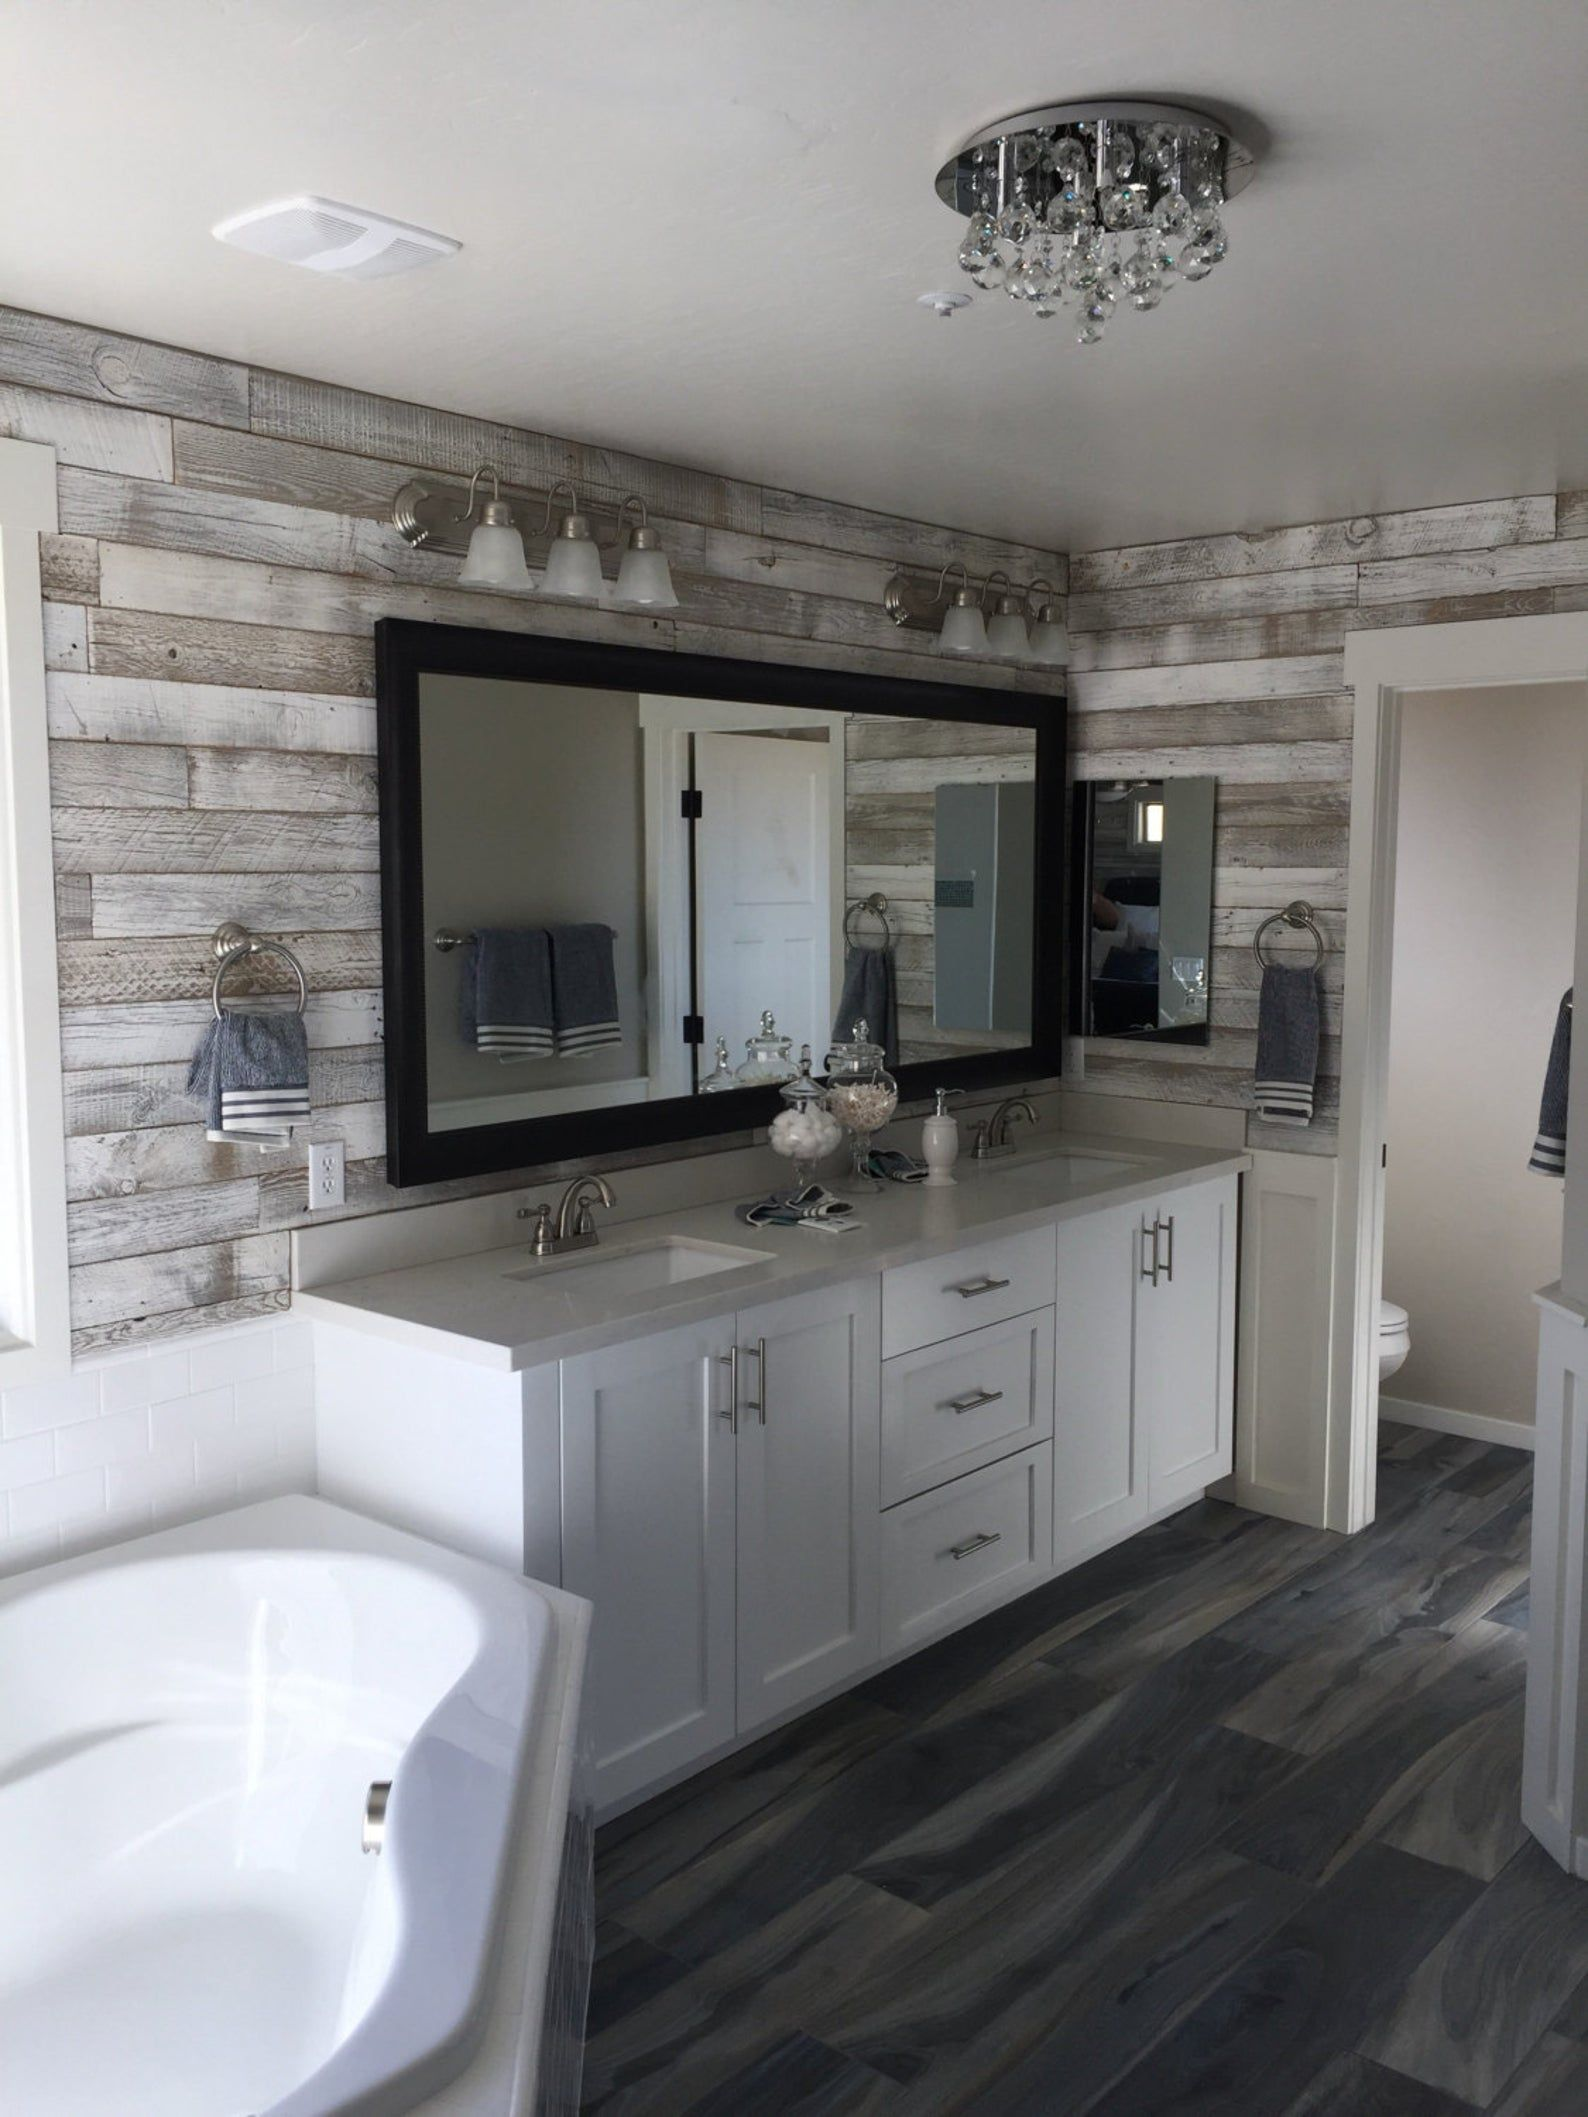 Reclaimed Wood Wall Paneling White Washed 1 Sqft In 2020 Reclaimed Wood Wall Panels Bathroom Remodel Master Reclaimed Wood Paneling